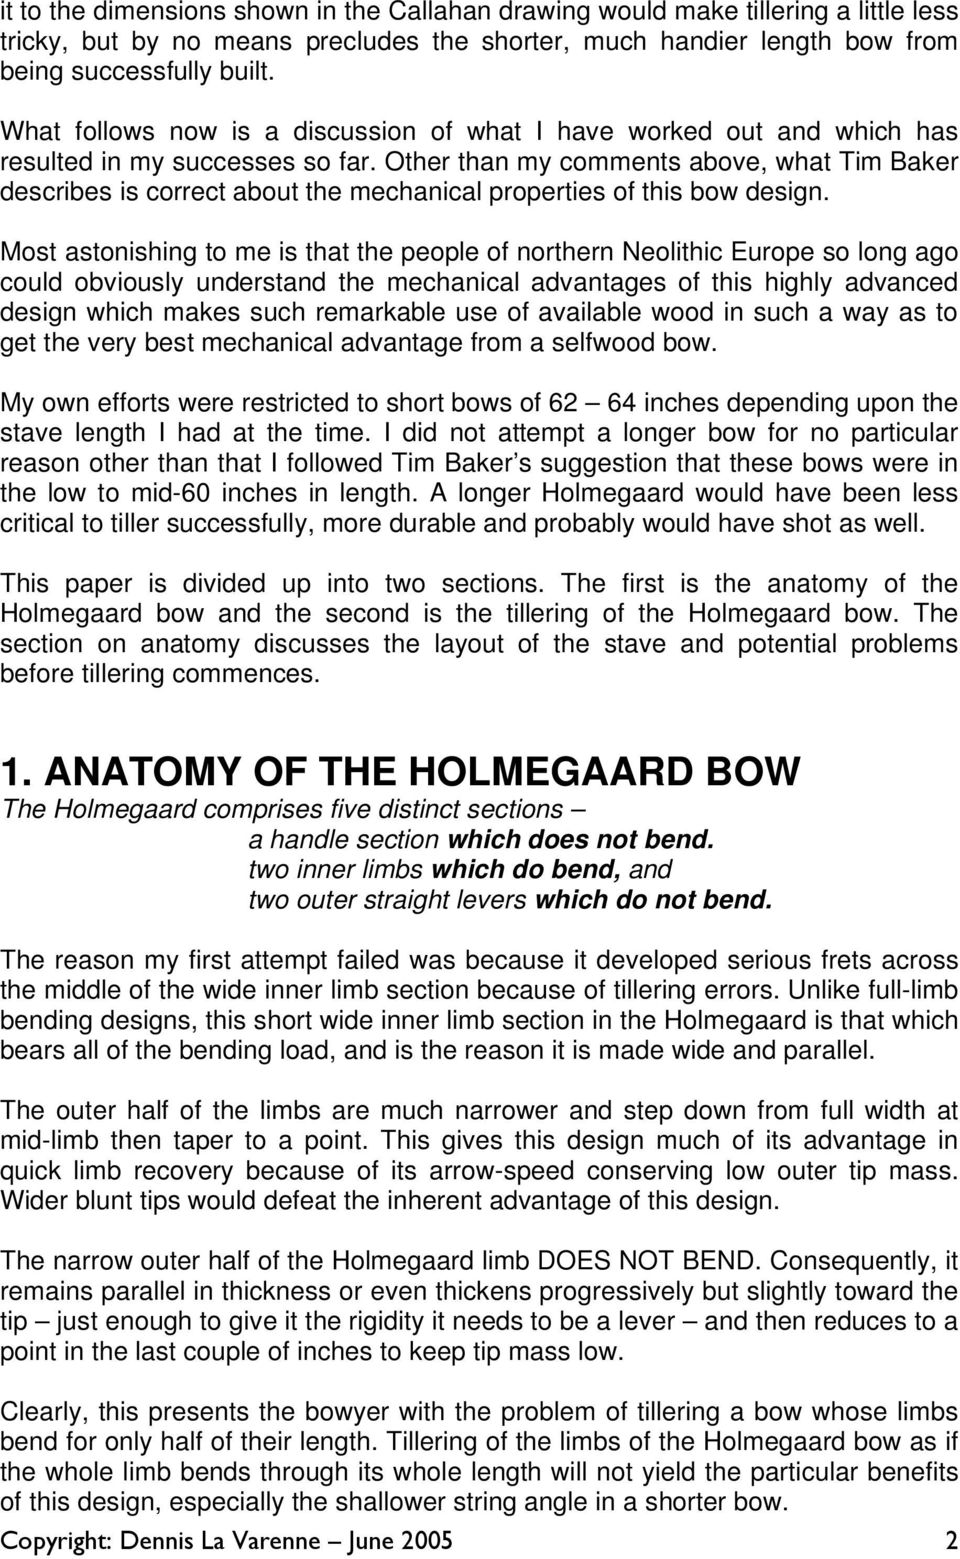 Tillering the Holmegaard Bow - PDF